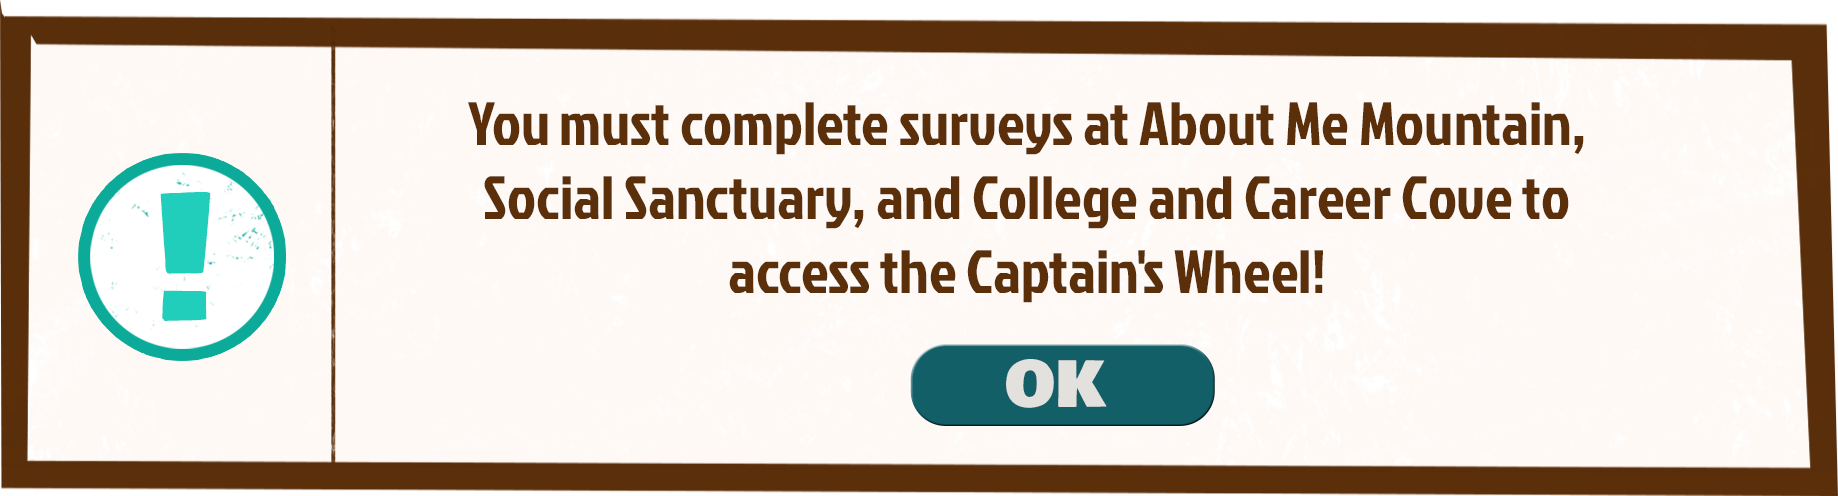 You must complete surveys at About Me Mountain, Social Sanctuary, and College and Career Cove to access the Captain's Wheel!